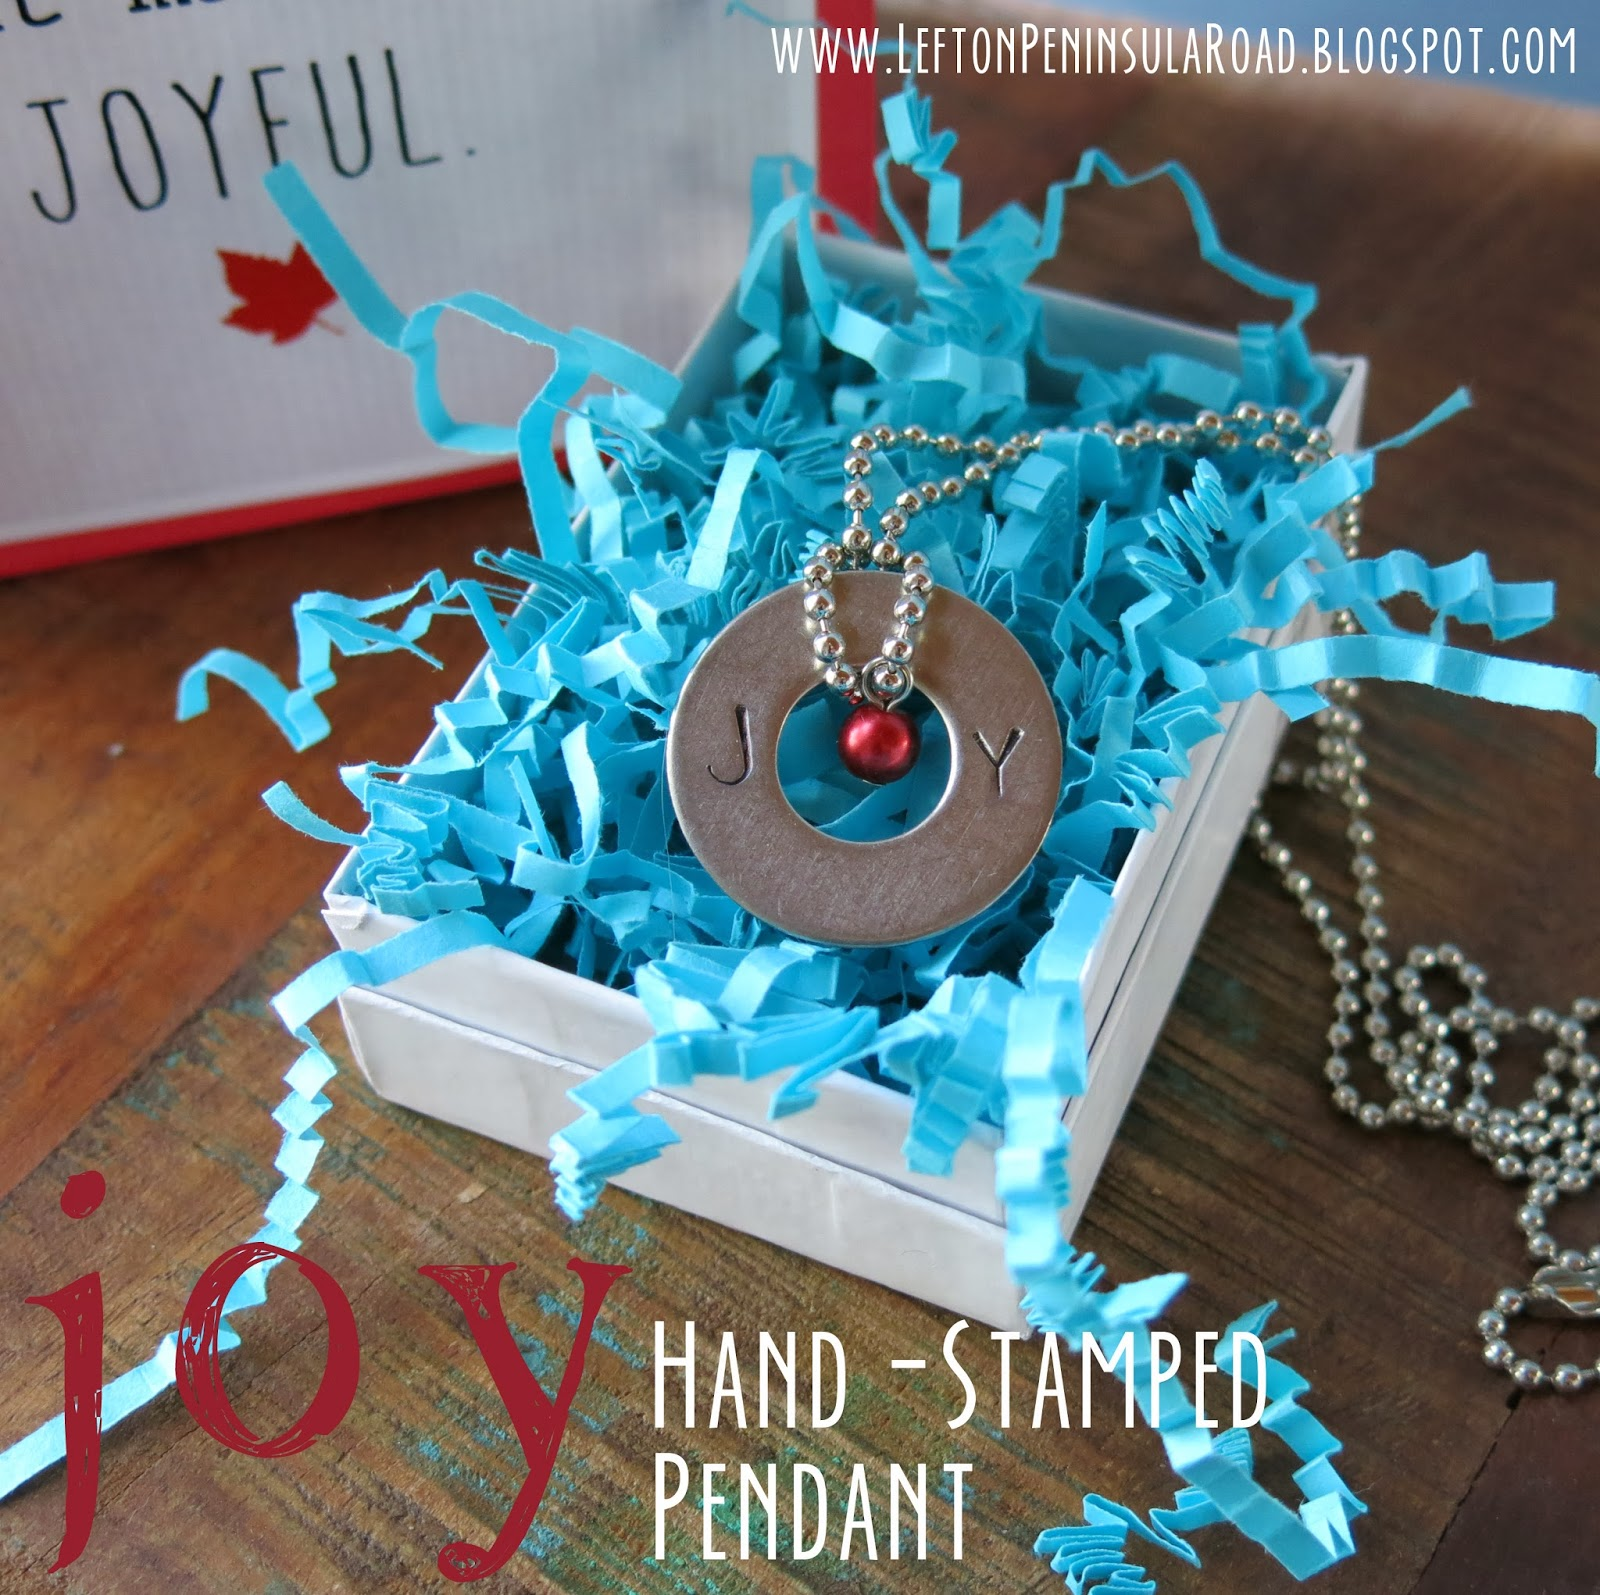 Make it hand stamped joy pendant left on peninsula road joy stamped washer pendant makes an inexpensive holiday gift aloadofball Gallery